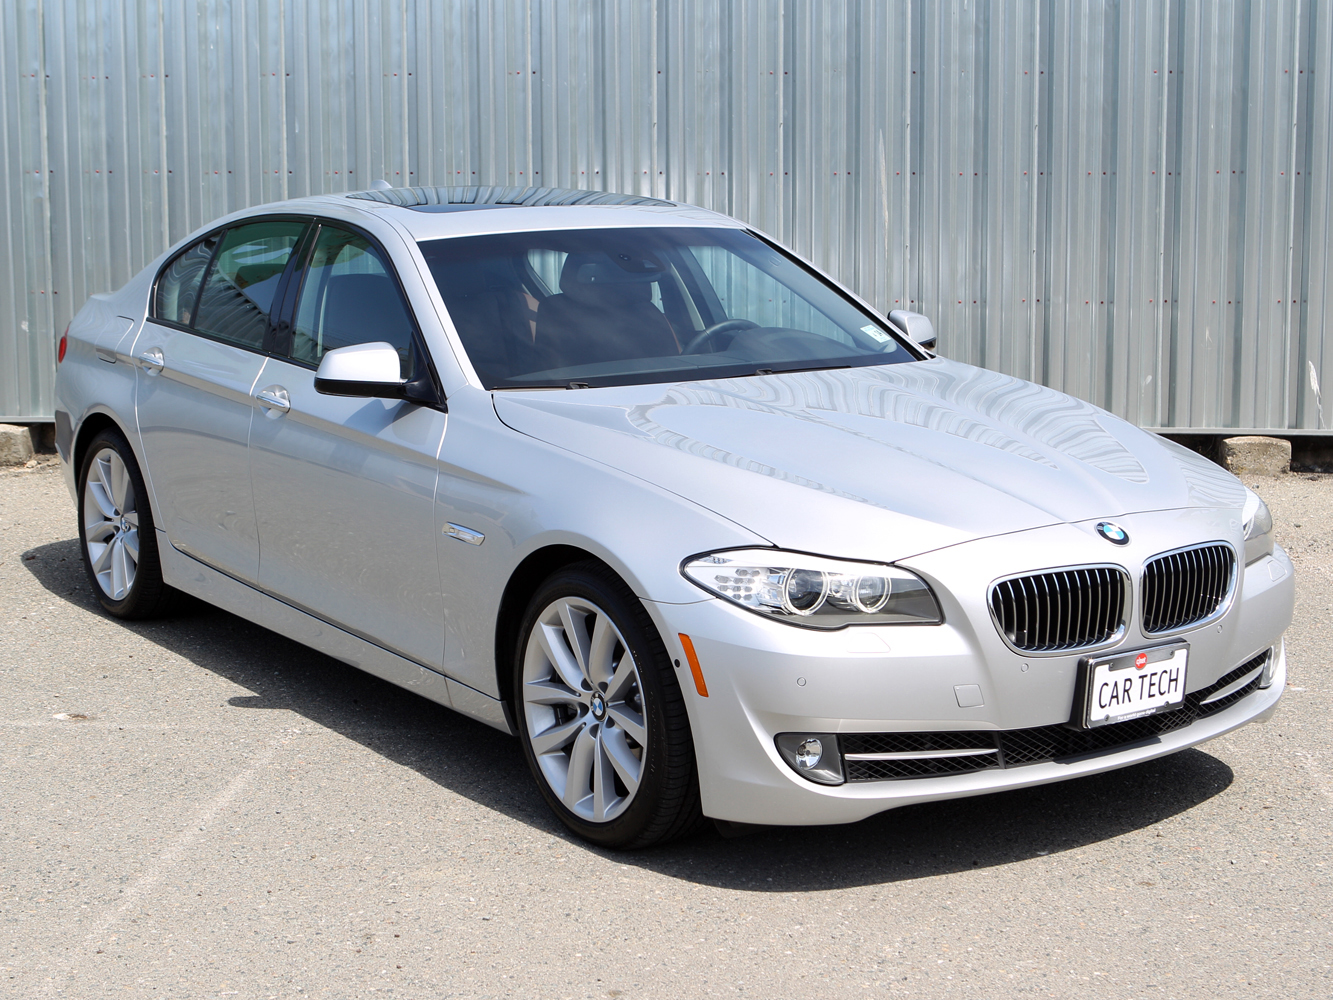 2011 Bmw 535i Review Roadshow